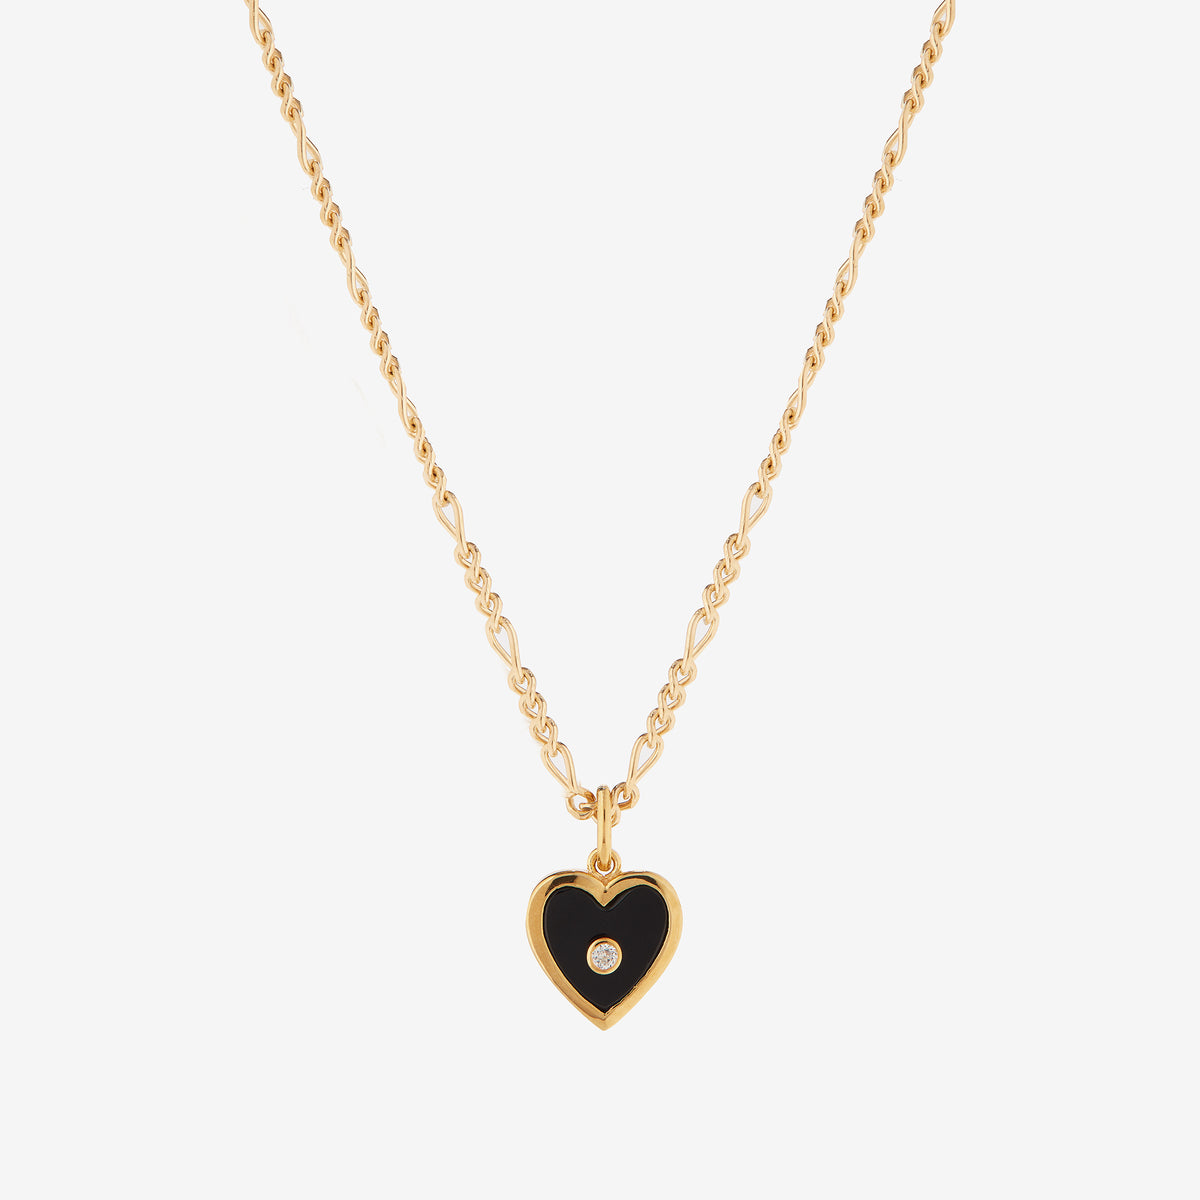 Figaro Chain with Black Onyx and White Topaz Heart Pendant (Pre-order)